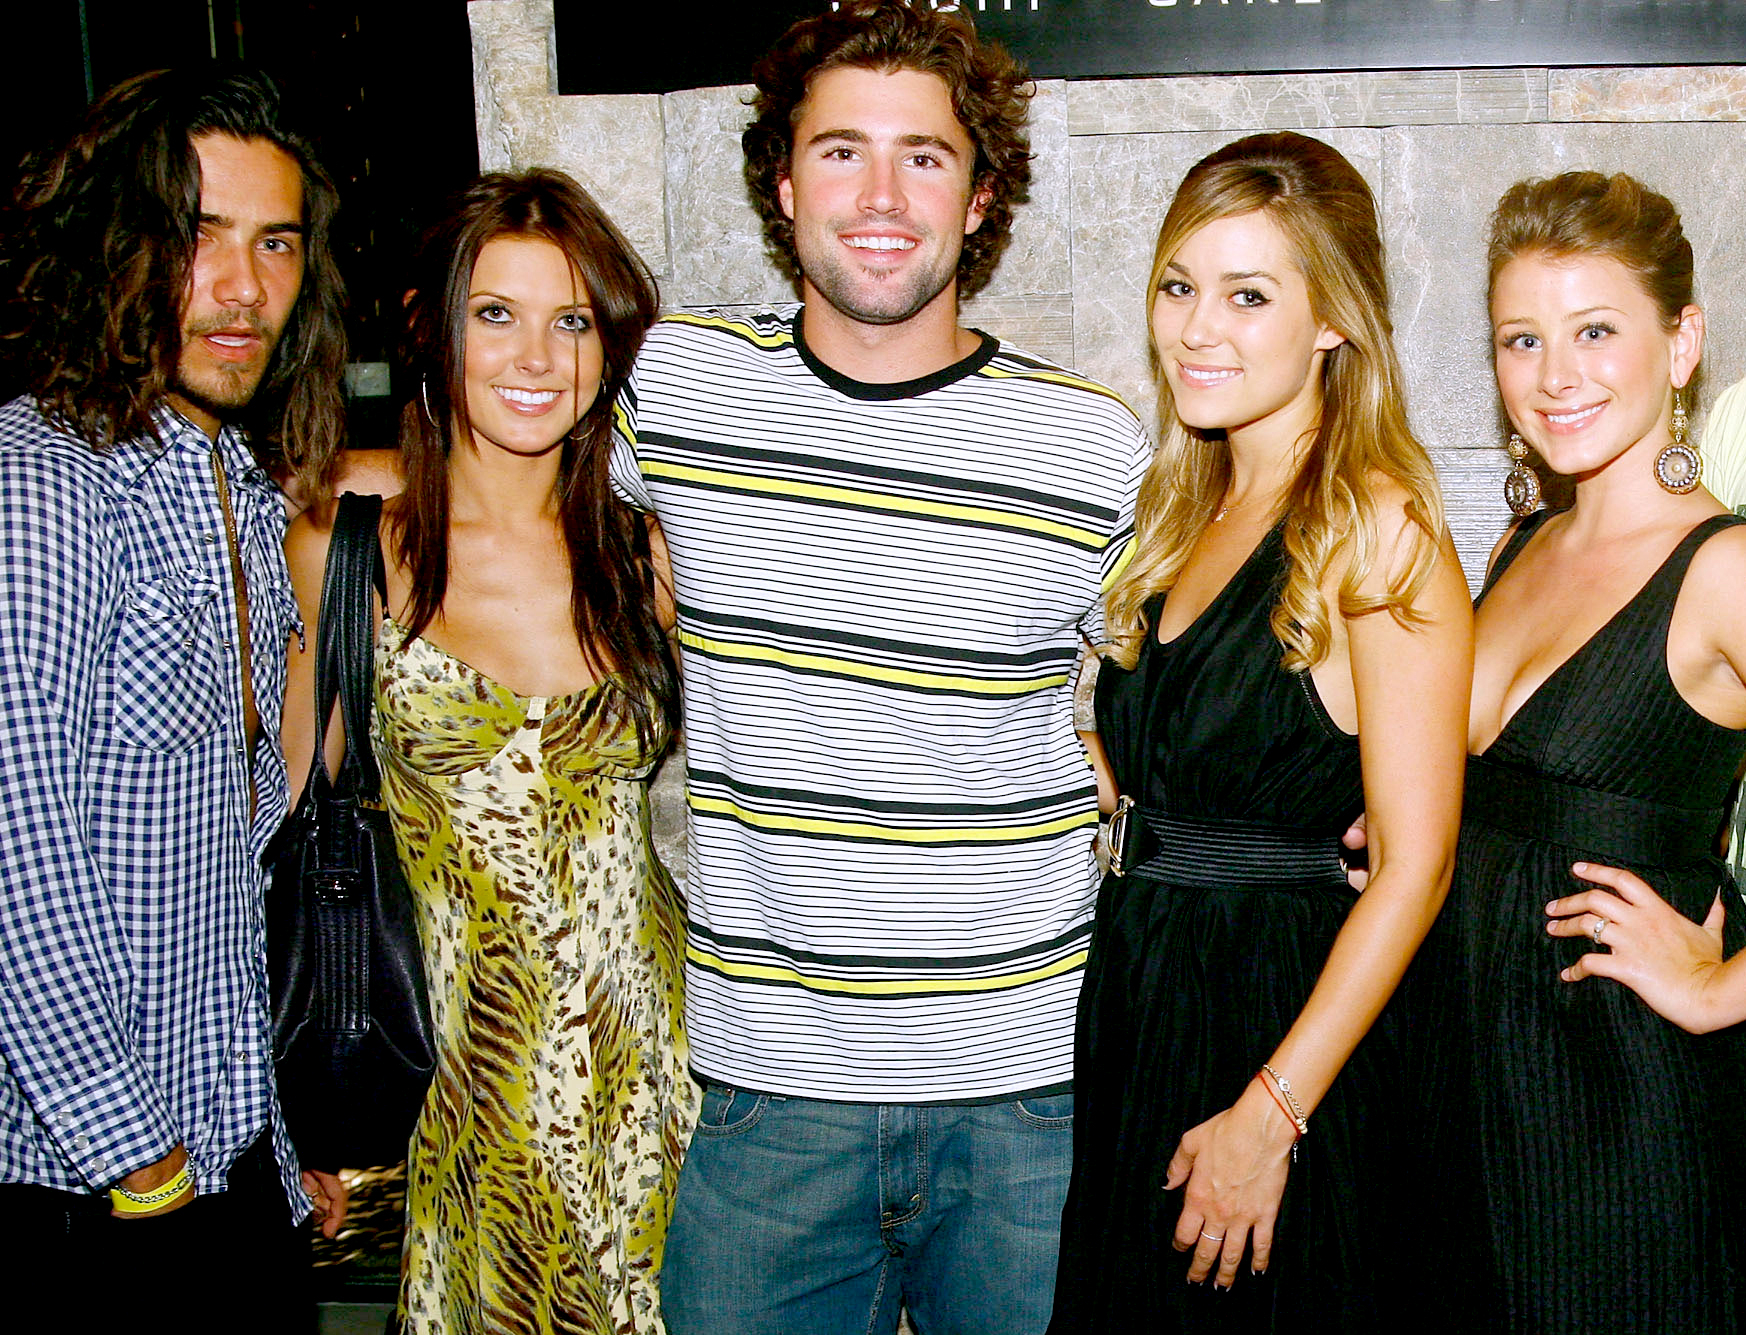 Justin Bobby, Audrina Patridge, Brody Jenner, Lauren Conrad, and Lo Bosworth arrive at Social House prior to Jenner's birthday party at PURE Nightclub on August 18, 2007 in Las Vegas, Nevada.